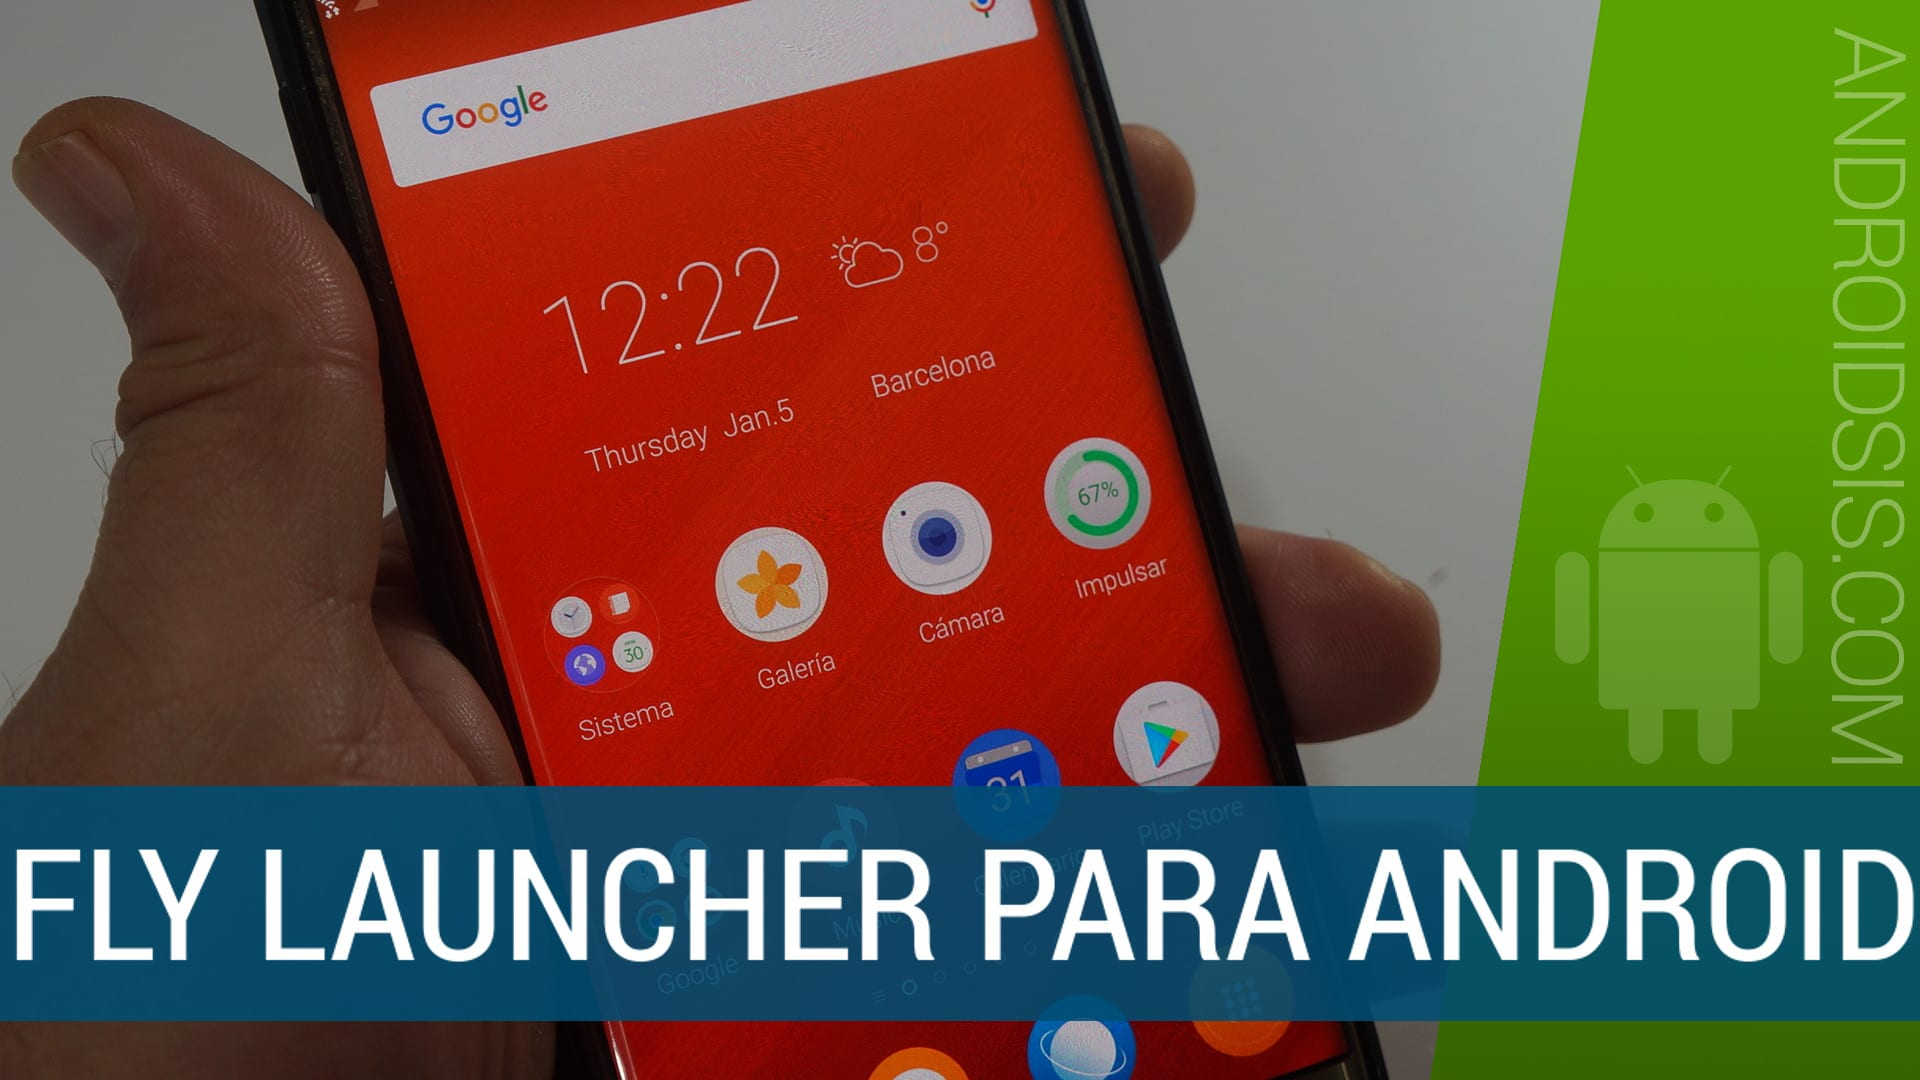 Fly Launcher 2.0